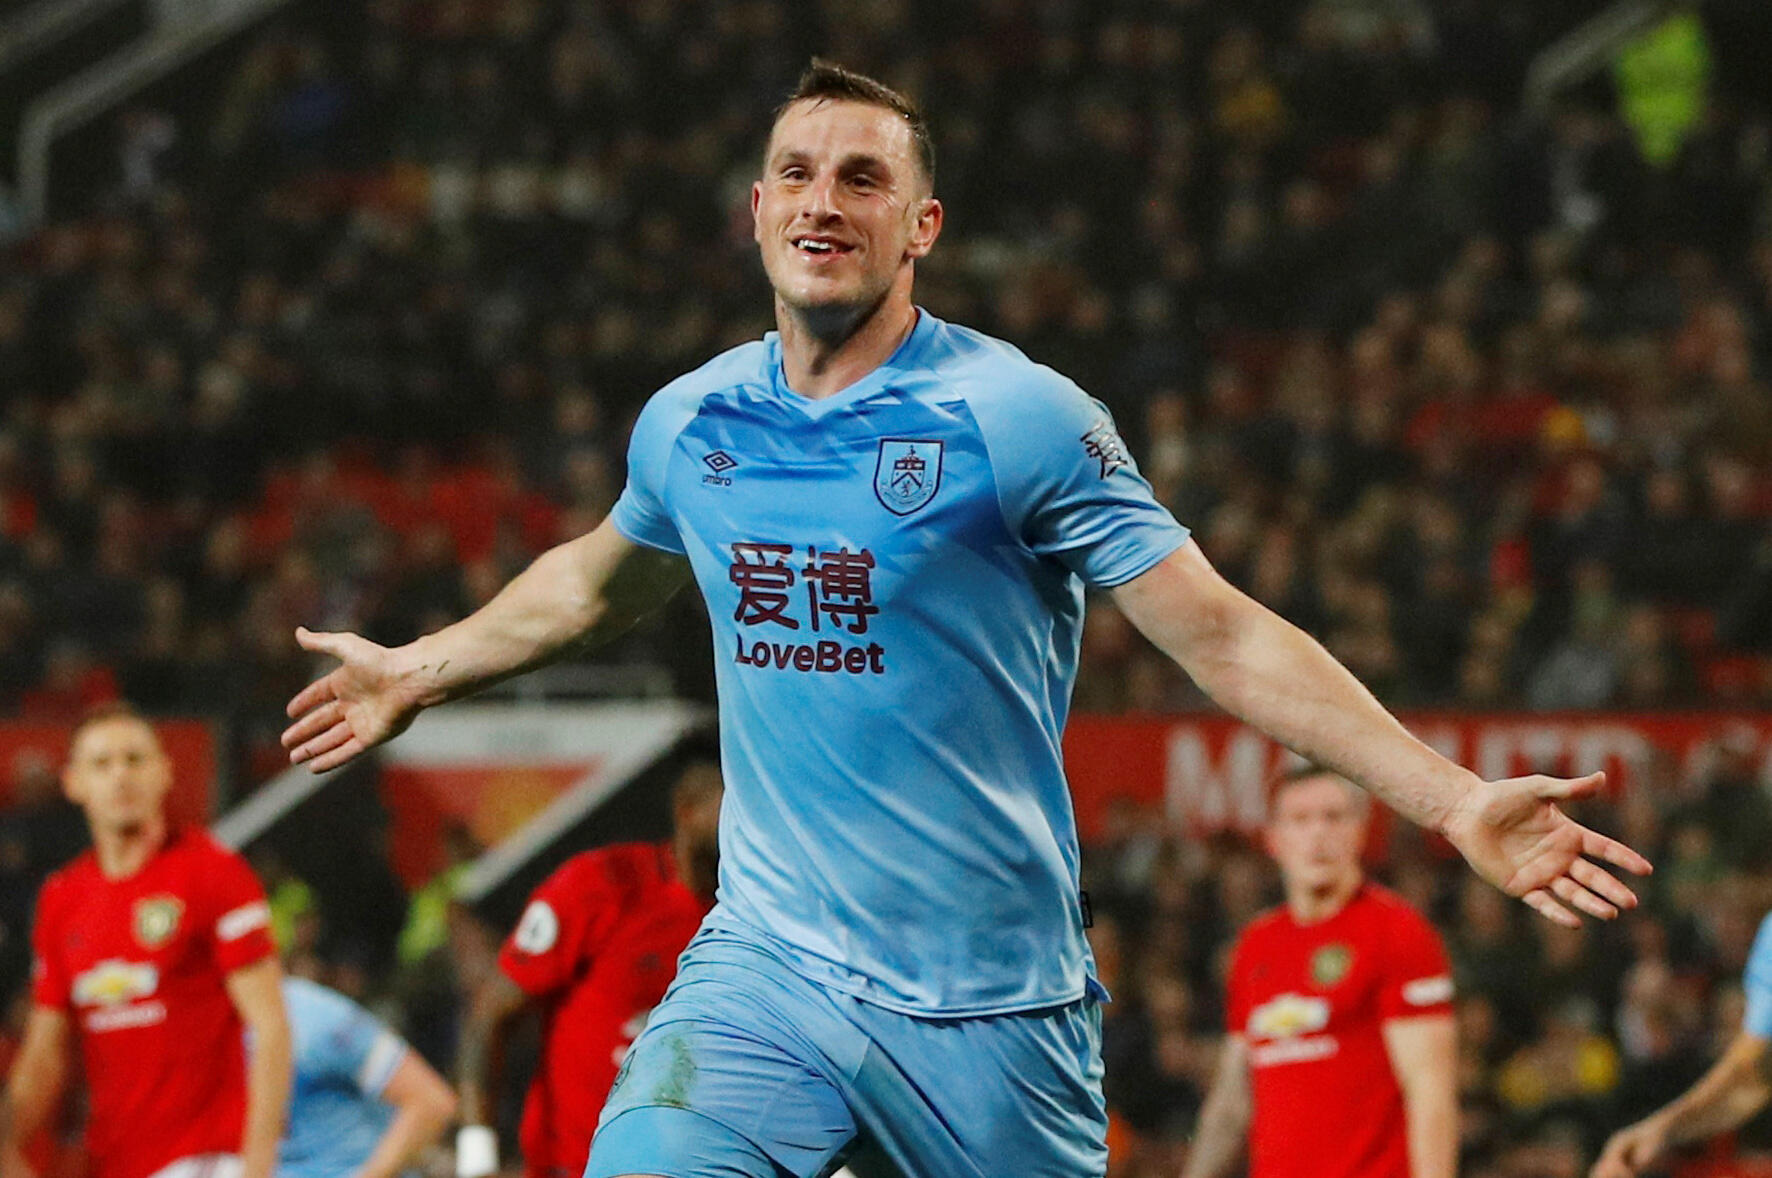 Chris Wood scored the first goal in Burnley's 2-0 win at Manchester United.